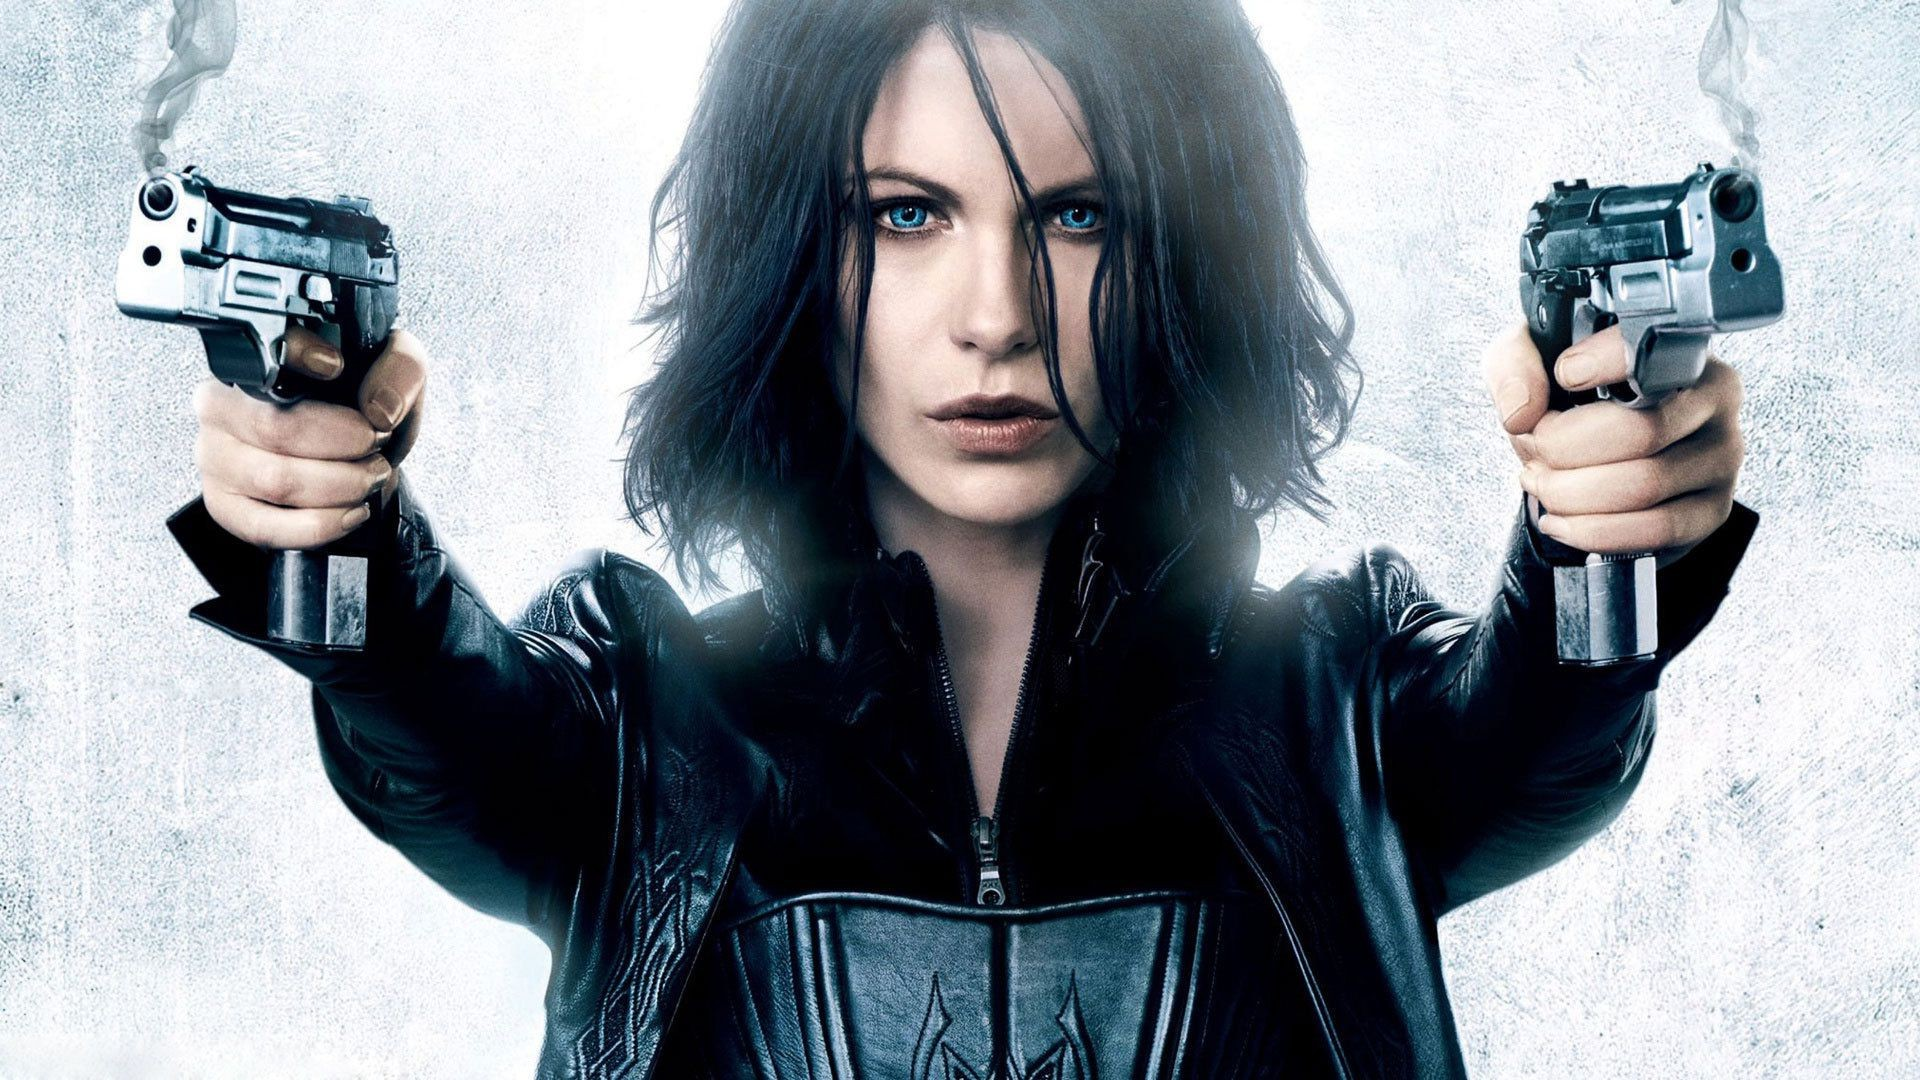 another world guns Underworld awakening Kate